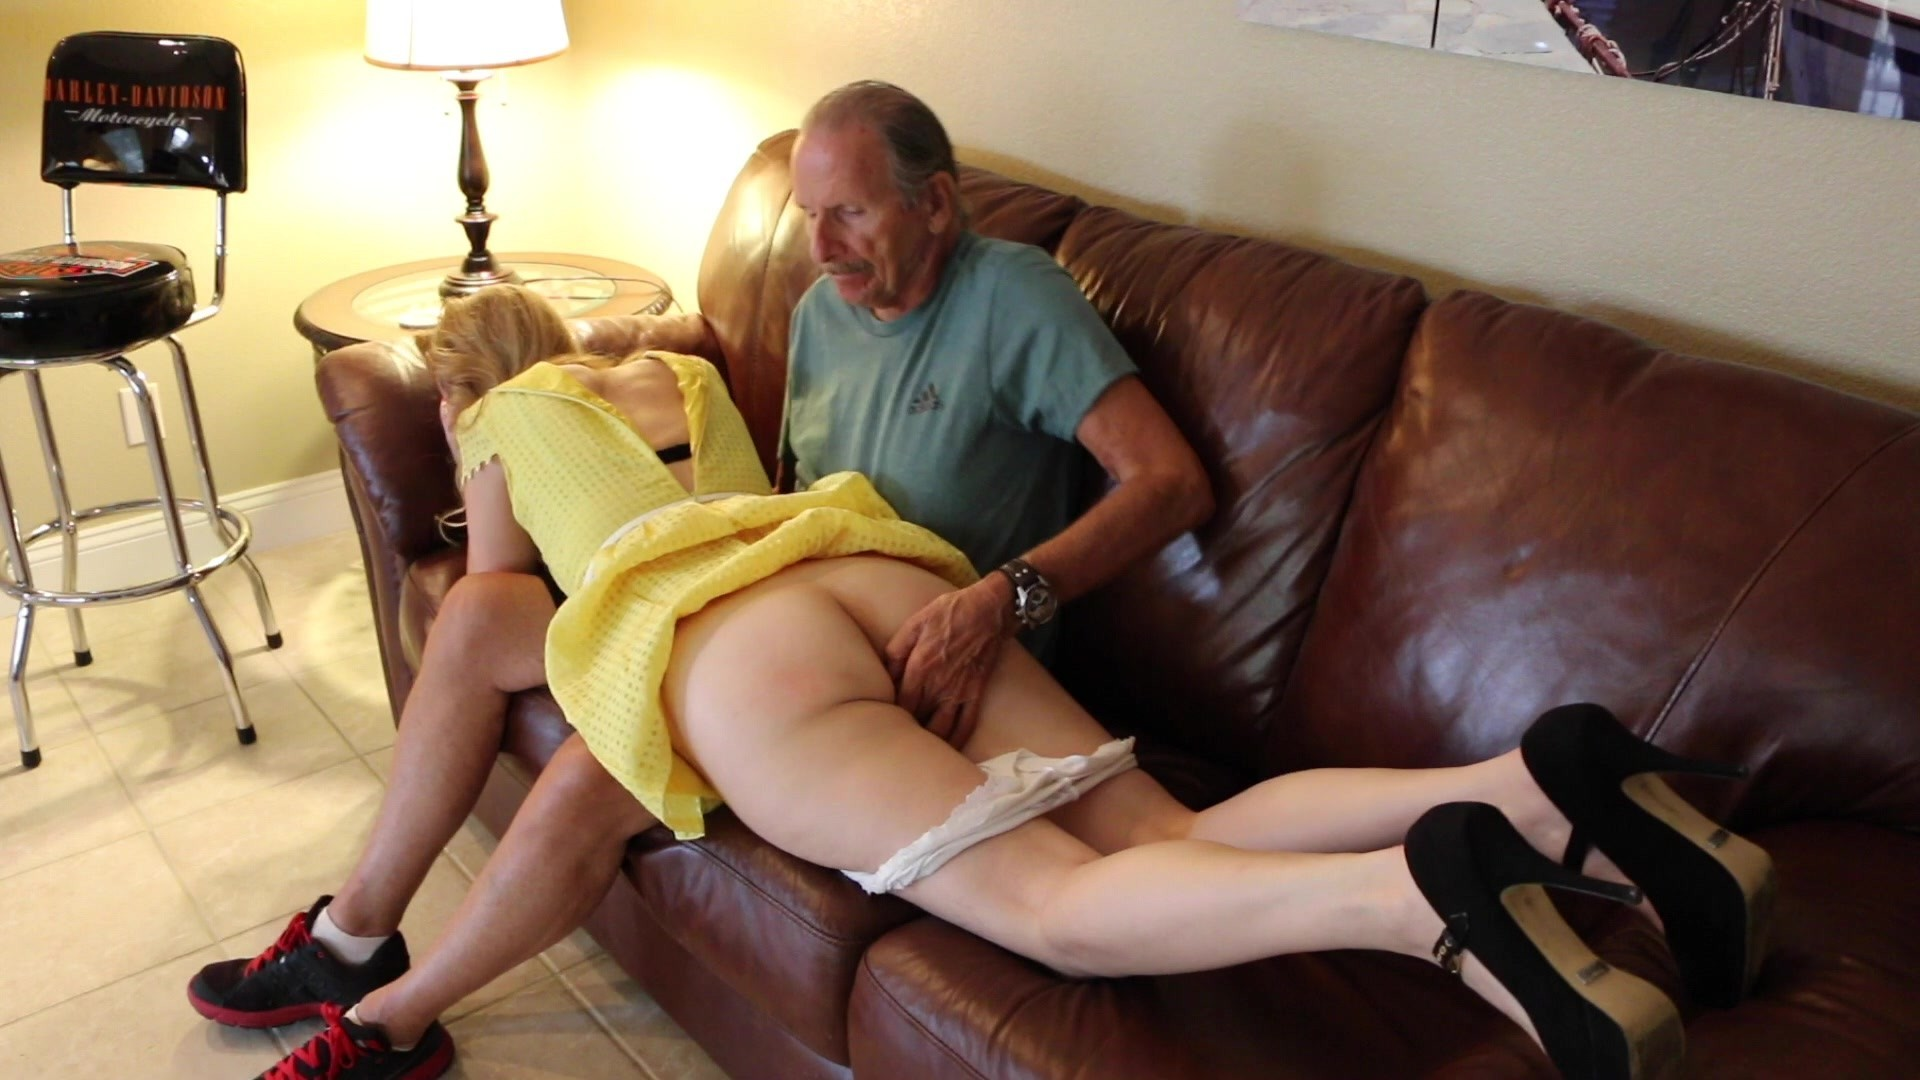 Fucking his hot stepdaughter hard